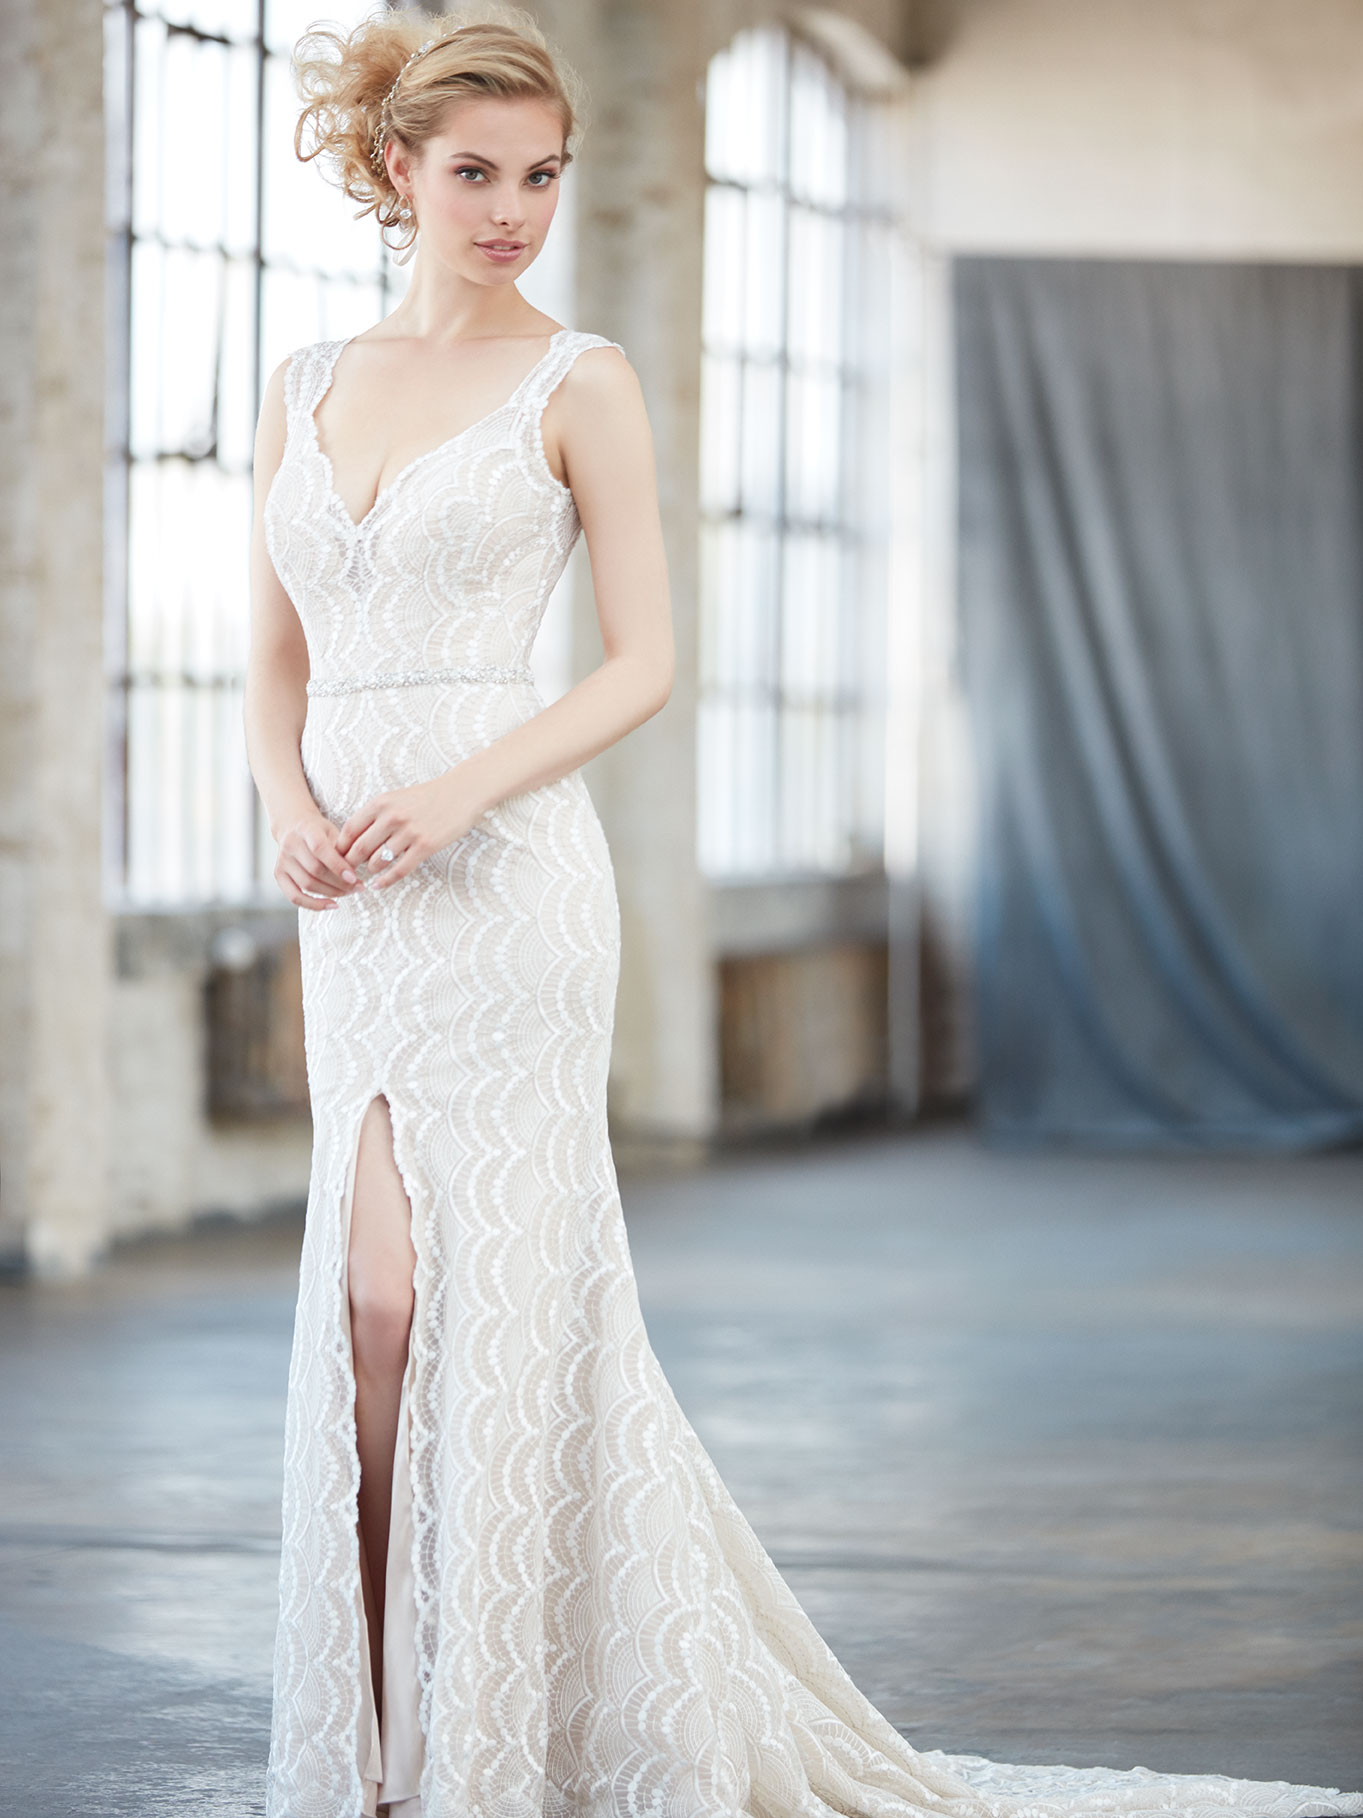 Allure Bridal Gowns Melbourne : Lace wedding dress featuring front split madison james trunk